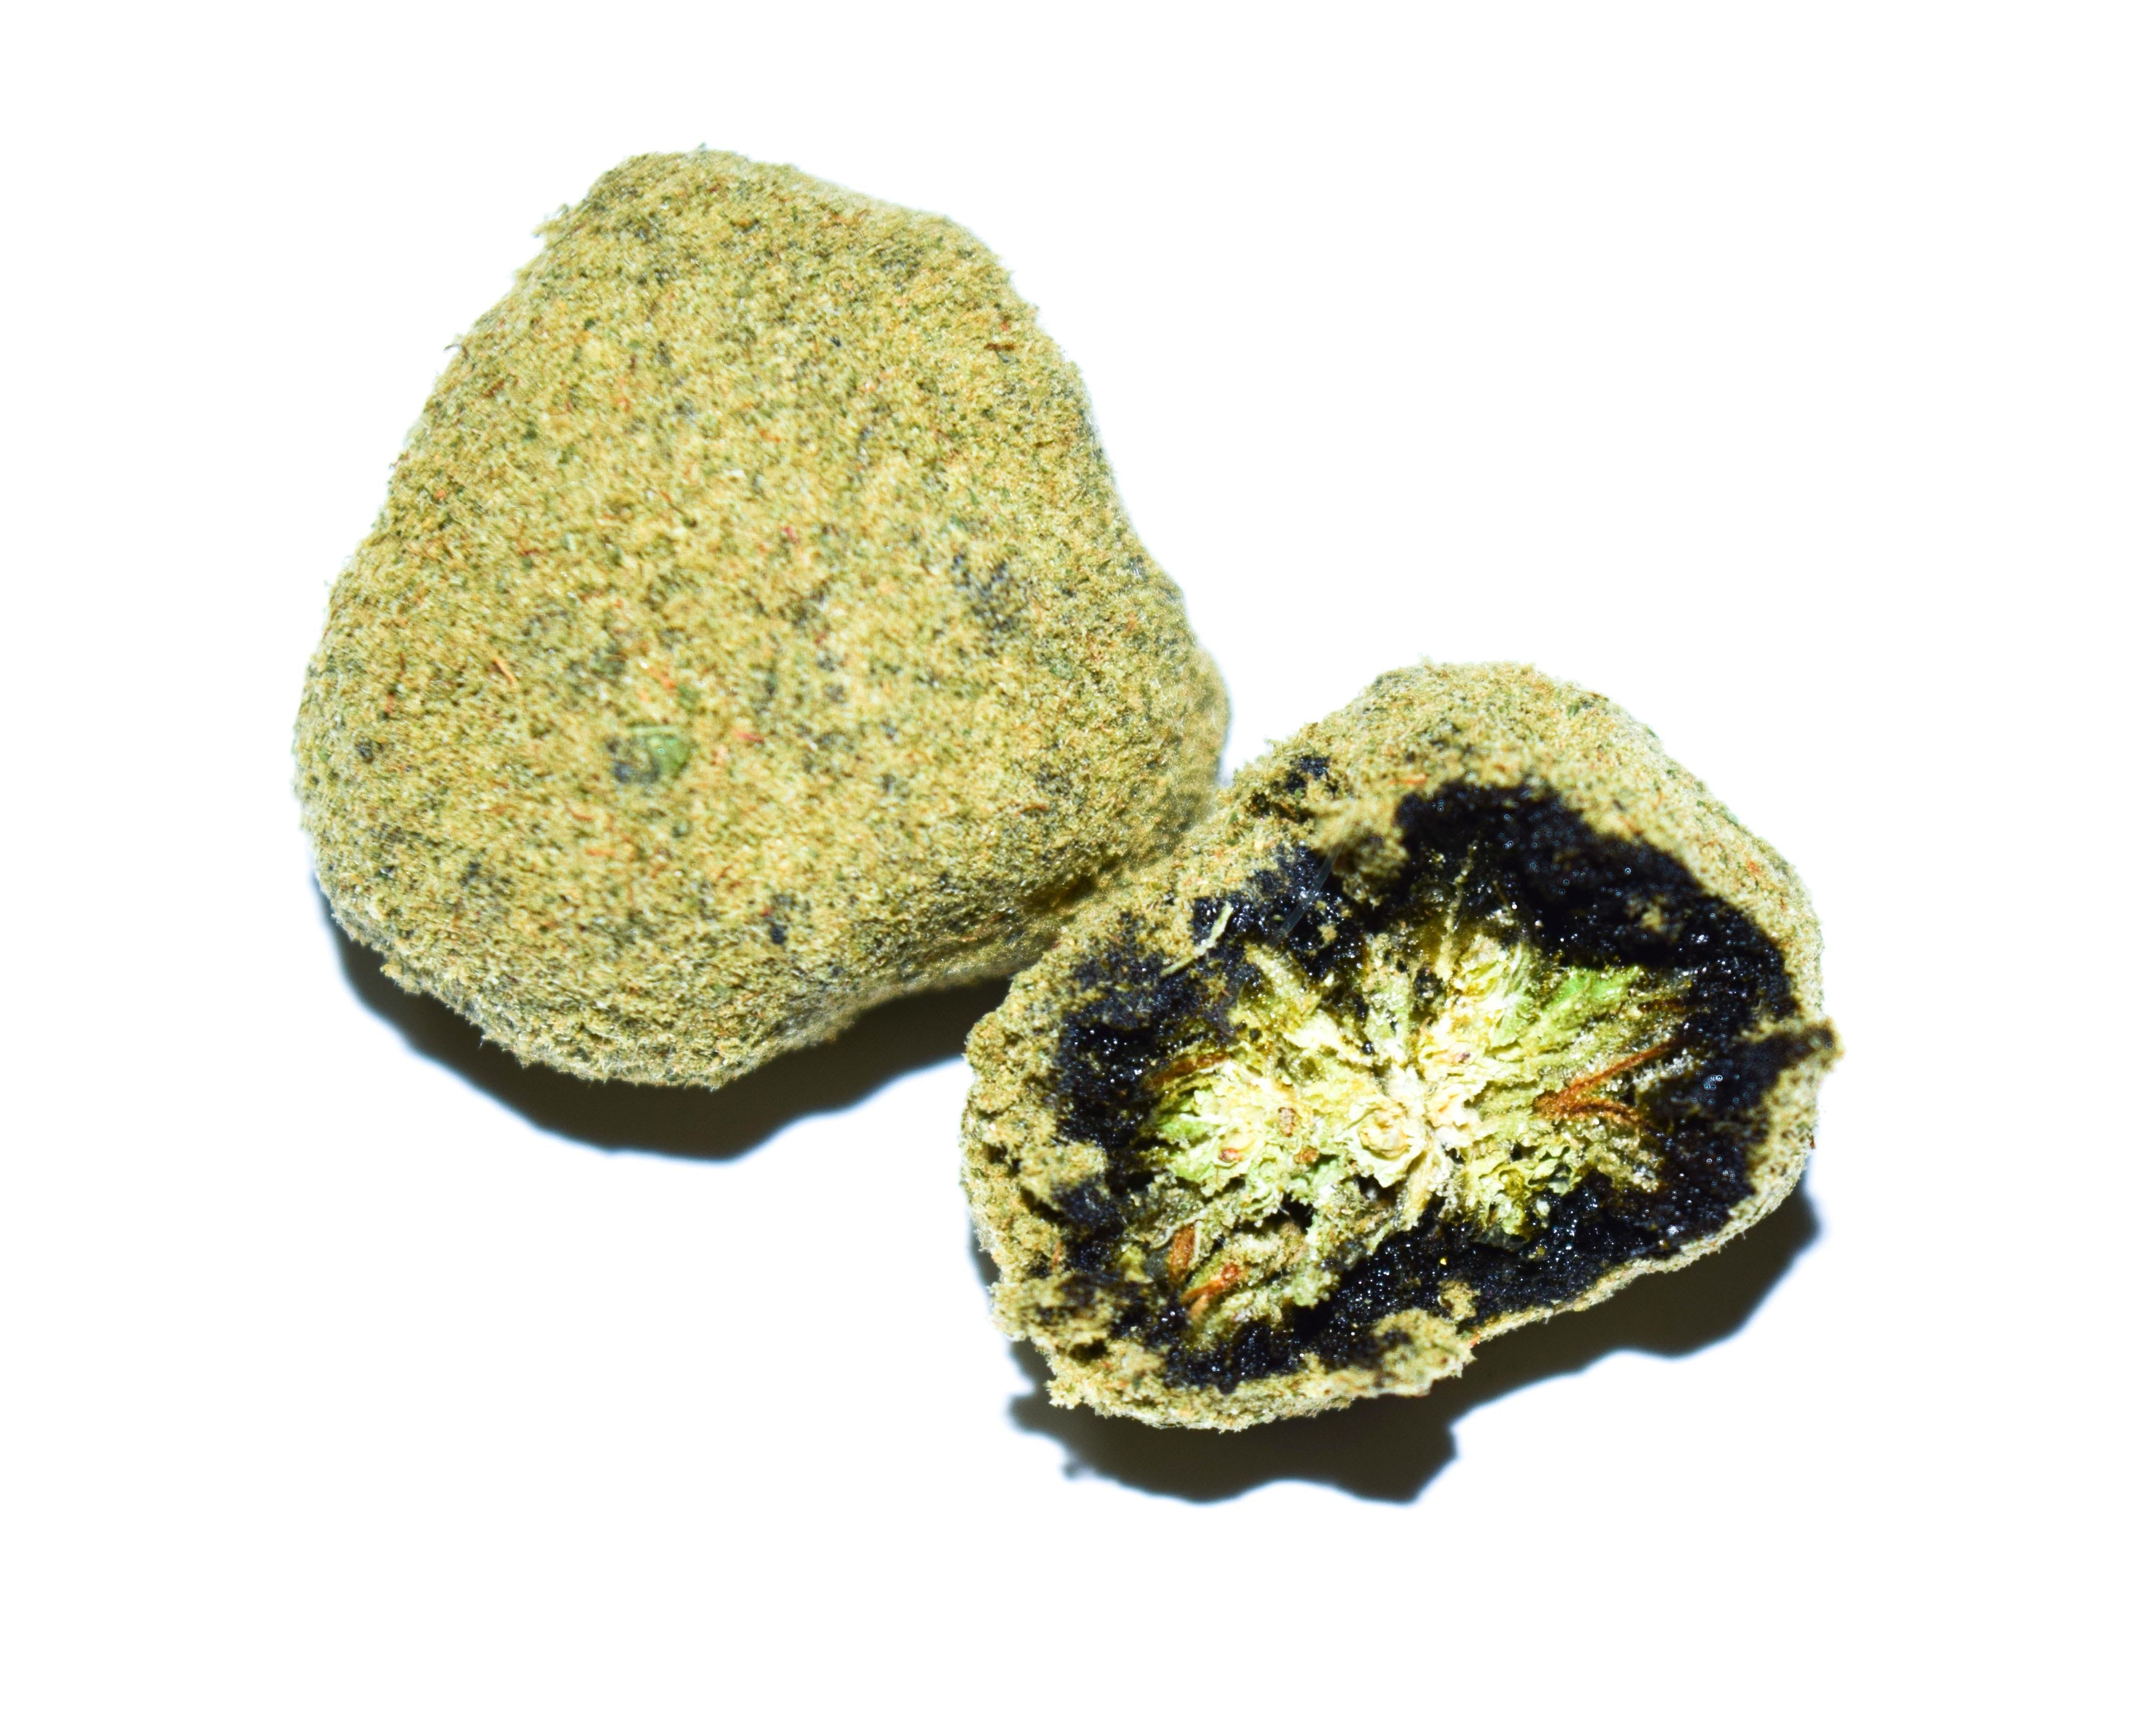 marijuana-dispensaries-pomona-faith-and-fellowship-in-pomona-moonrocks-strawberry